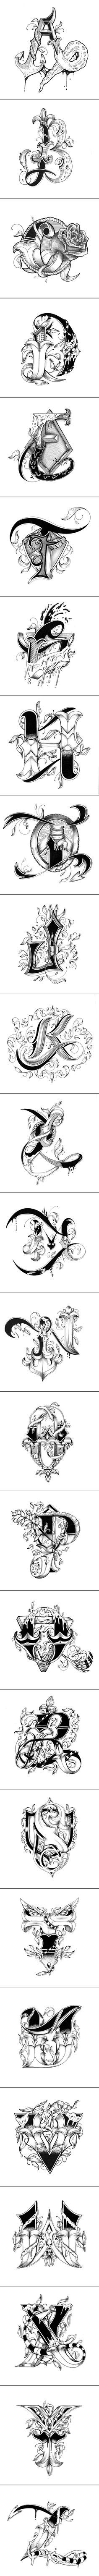 Best Lettering Design Alphabet - Luxury Best Lettering Design Alphabet , Letter and Symbol Misrecognition In Highly Legible Typefaces for Calligraphy Letters, Typography Letters, Alphabet Fonts, Fancy Lettering Alphabet, Design Alphabet, Alphabet Art, Schrift Tattoos, Fancy Letters, Illuminated Letters